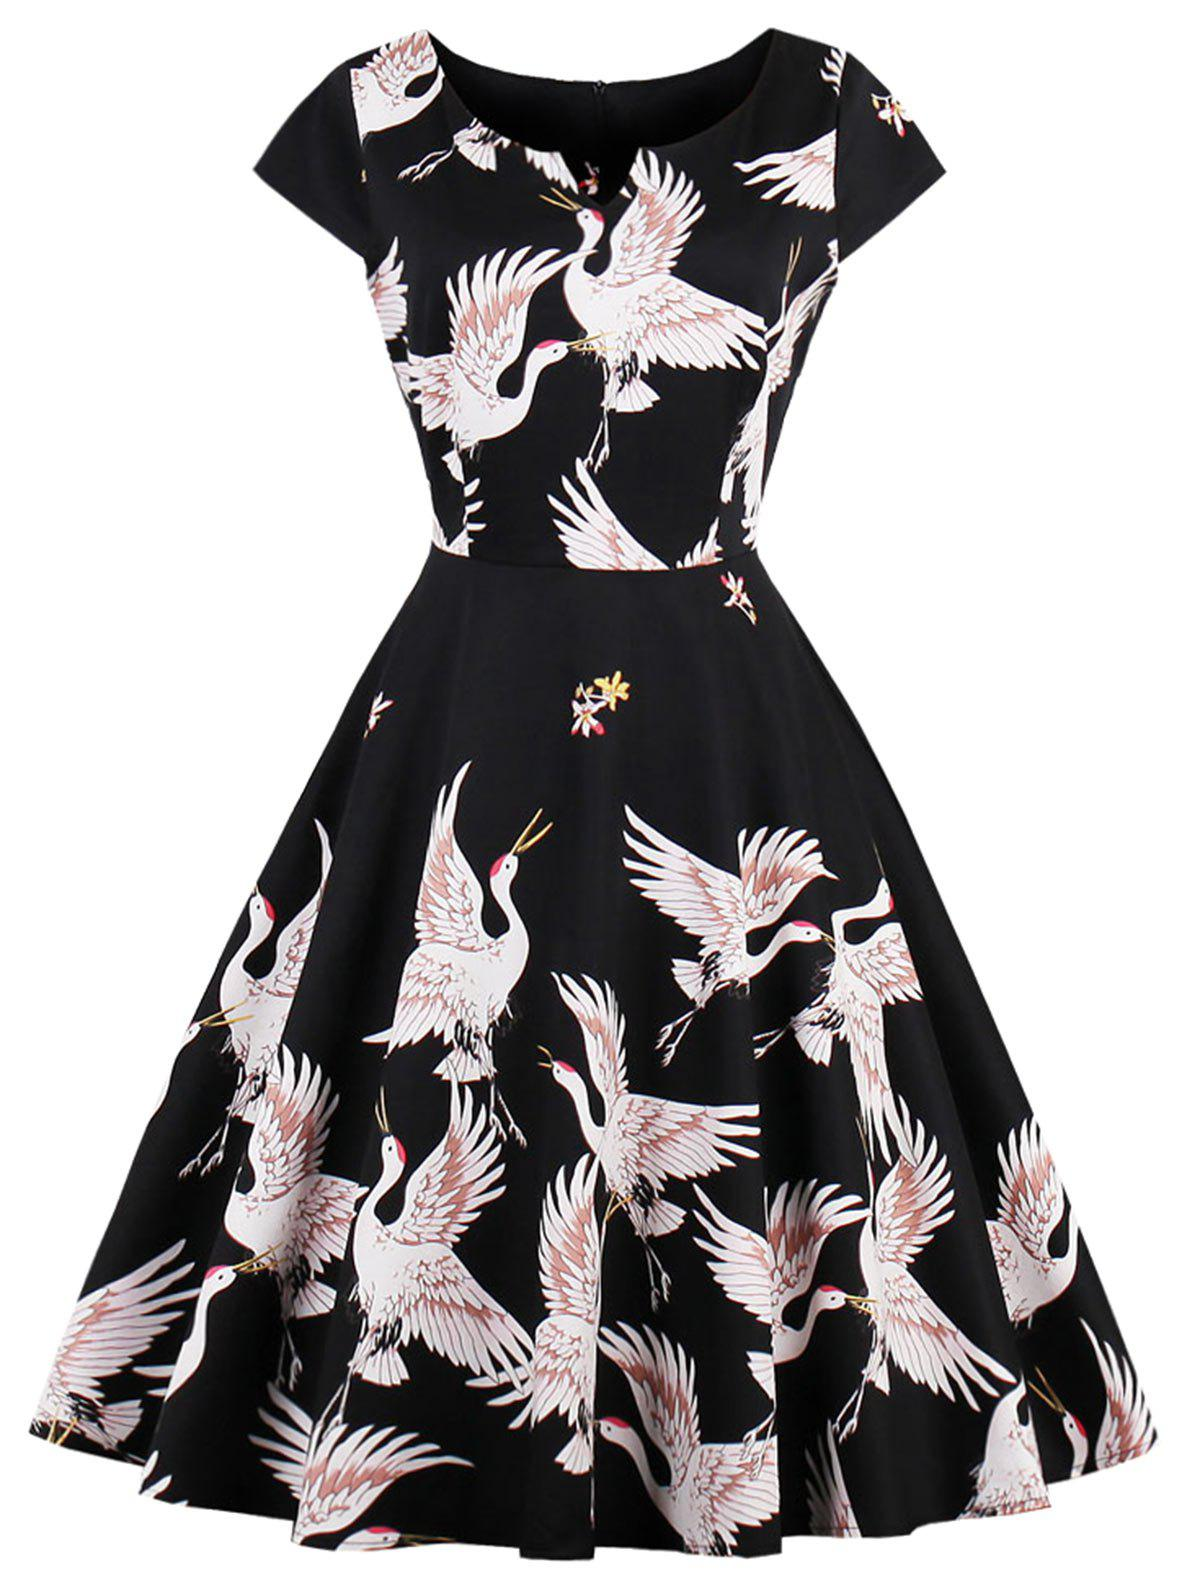 Plus Size Vintage Crane Print Cap Sleeve DressWOMEN<br><br>Size: 3XL; Color: BLACK; Style: Vintage; Material: Cotton,Polyester; Silhouette: A-Line; Dresses Length: Knee-Length; Neckline: Round Collar; Sleeve Type: Cap Sleeve; Sleeve Length: Short Sleeves; Pattern Type: Animal; With Belt: No; Season: Fall,Spring,Summer; Weight: 0.3700kg; Package Contents: 1 x Dress;